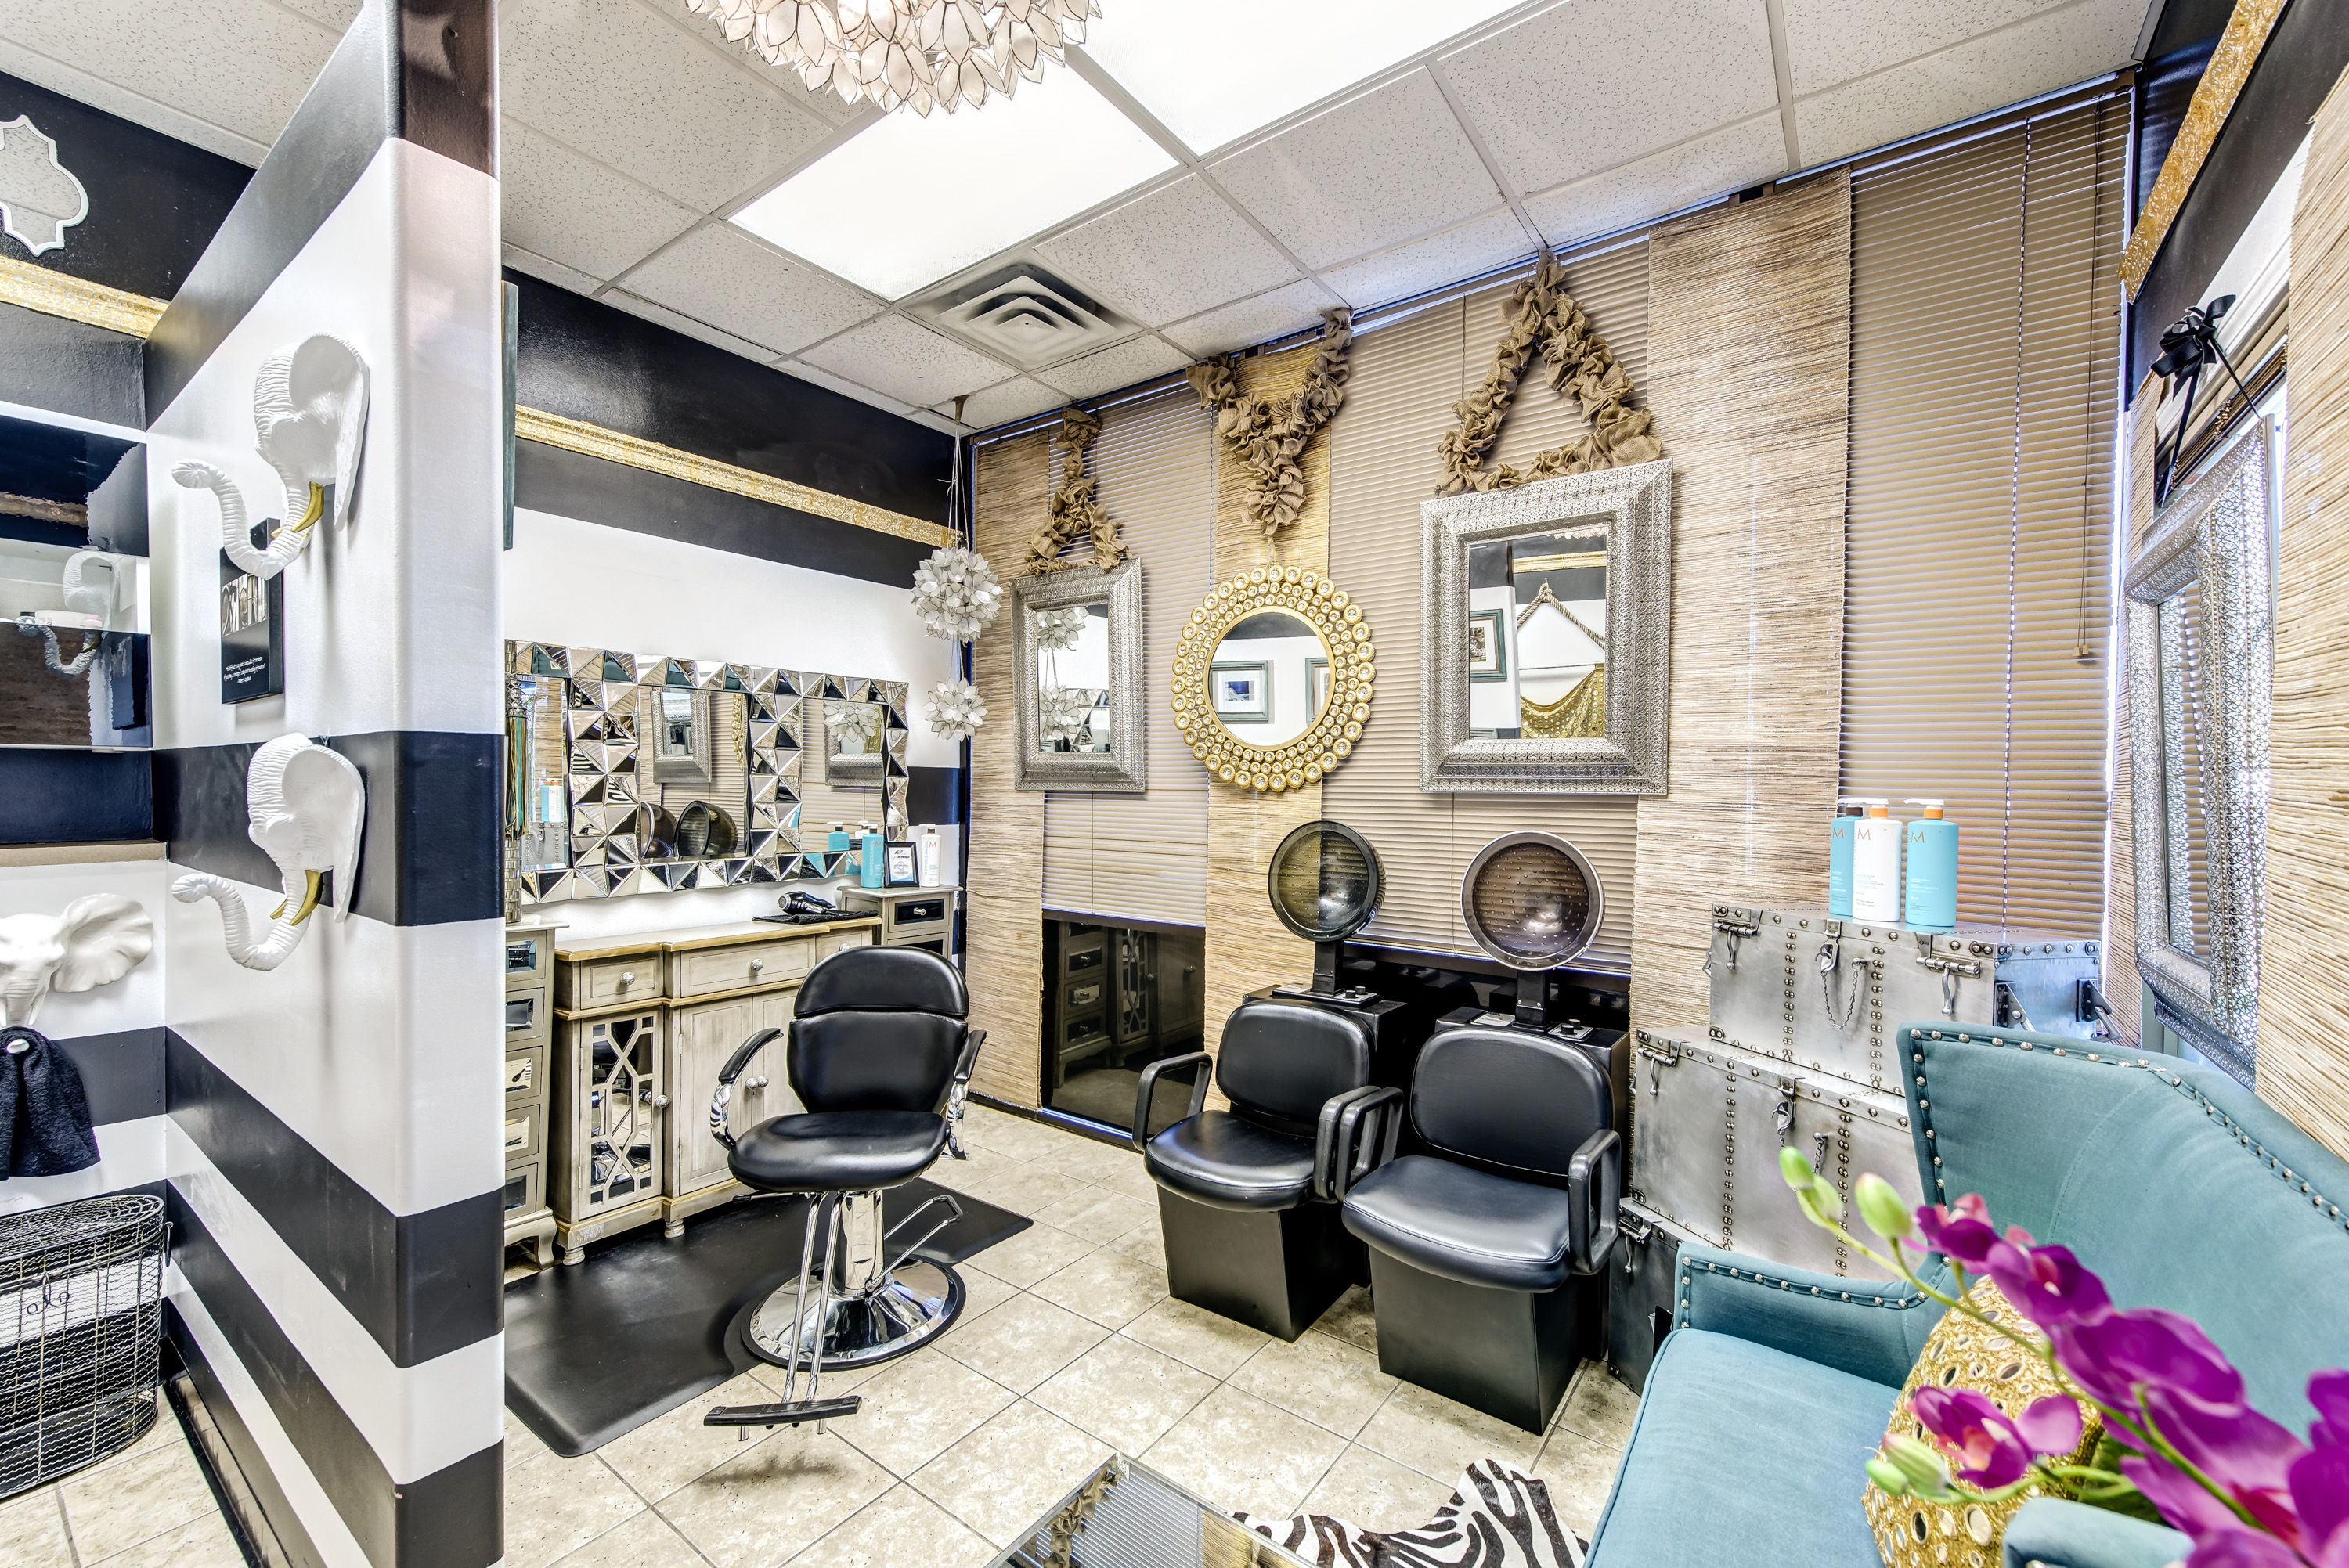 Salon meyerland 1 relaxed and natural black hair salons for Hair salons open near me